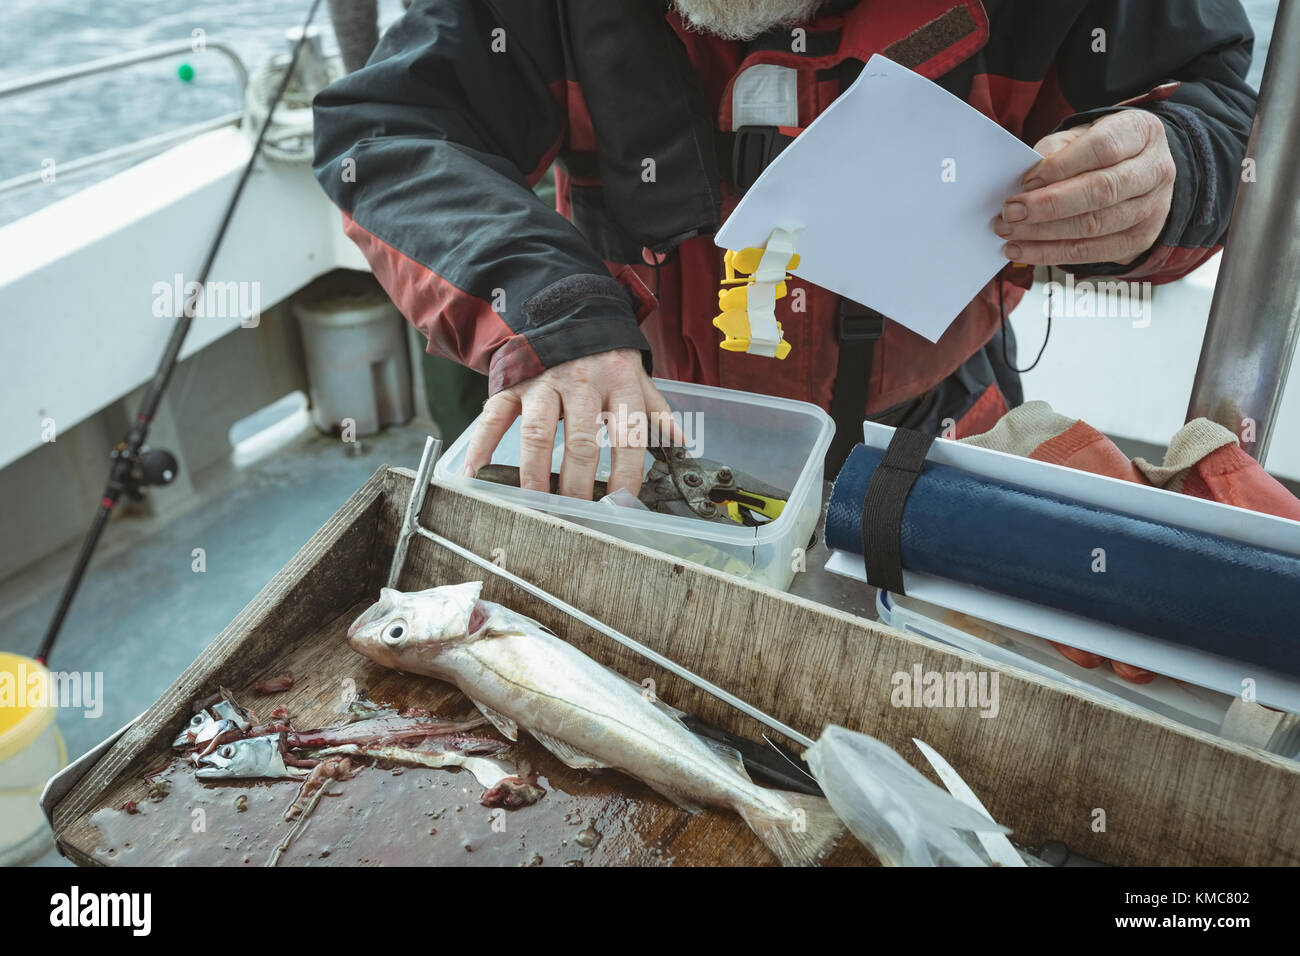 Mid section of fisherman maintaining record of hand tool - Stock Image